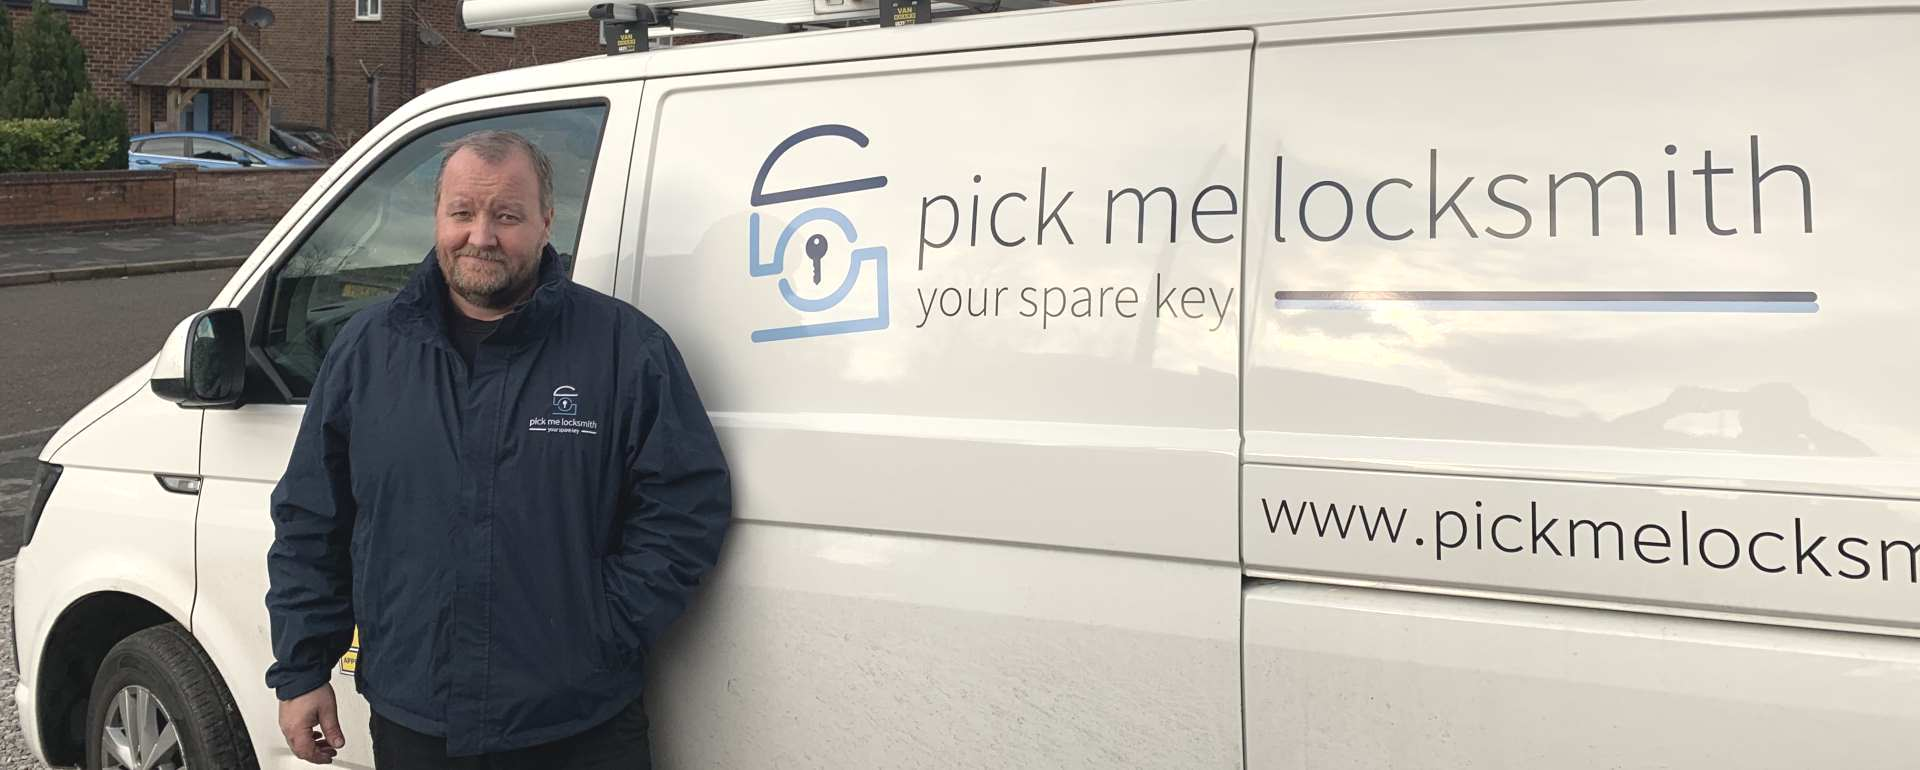 Locksmith Mansfield - Steve Kearney Locksmith in Mansfield by his Locksmiths van